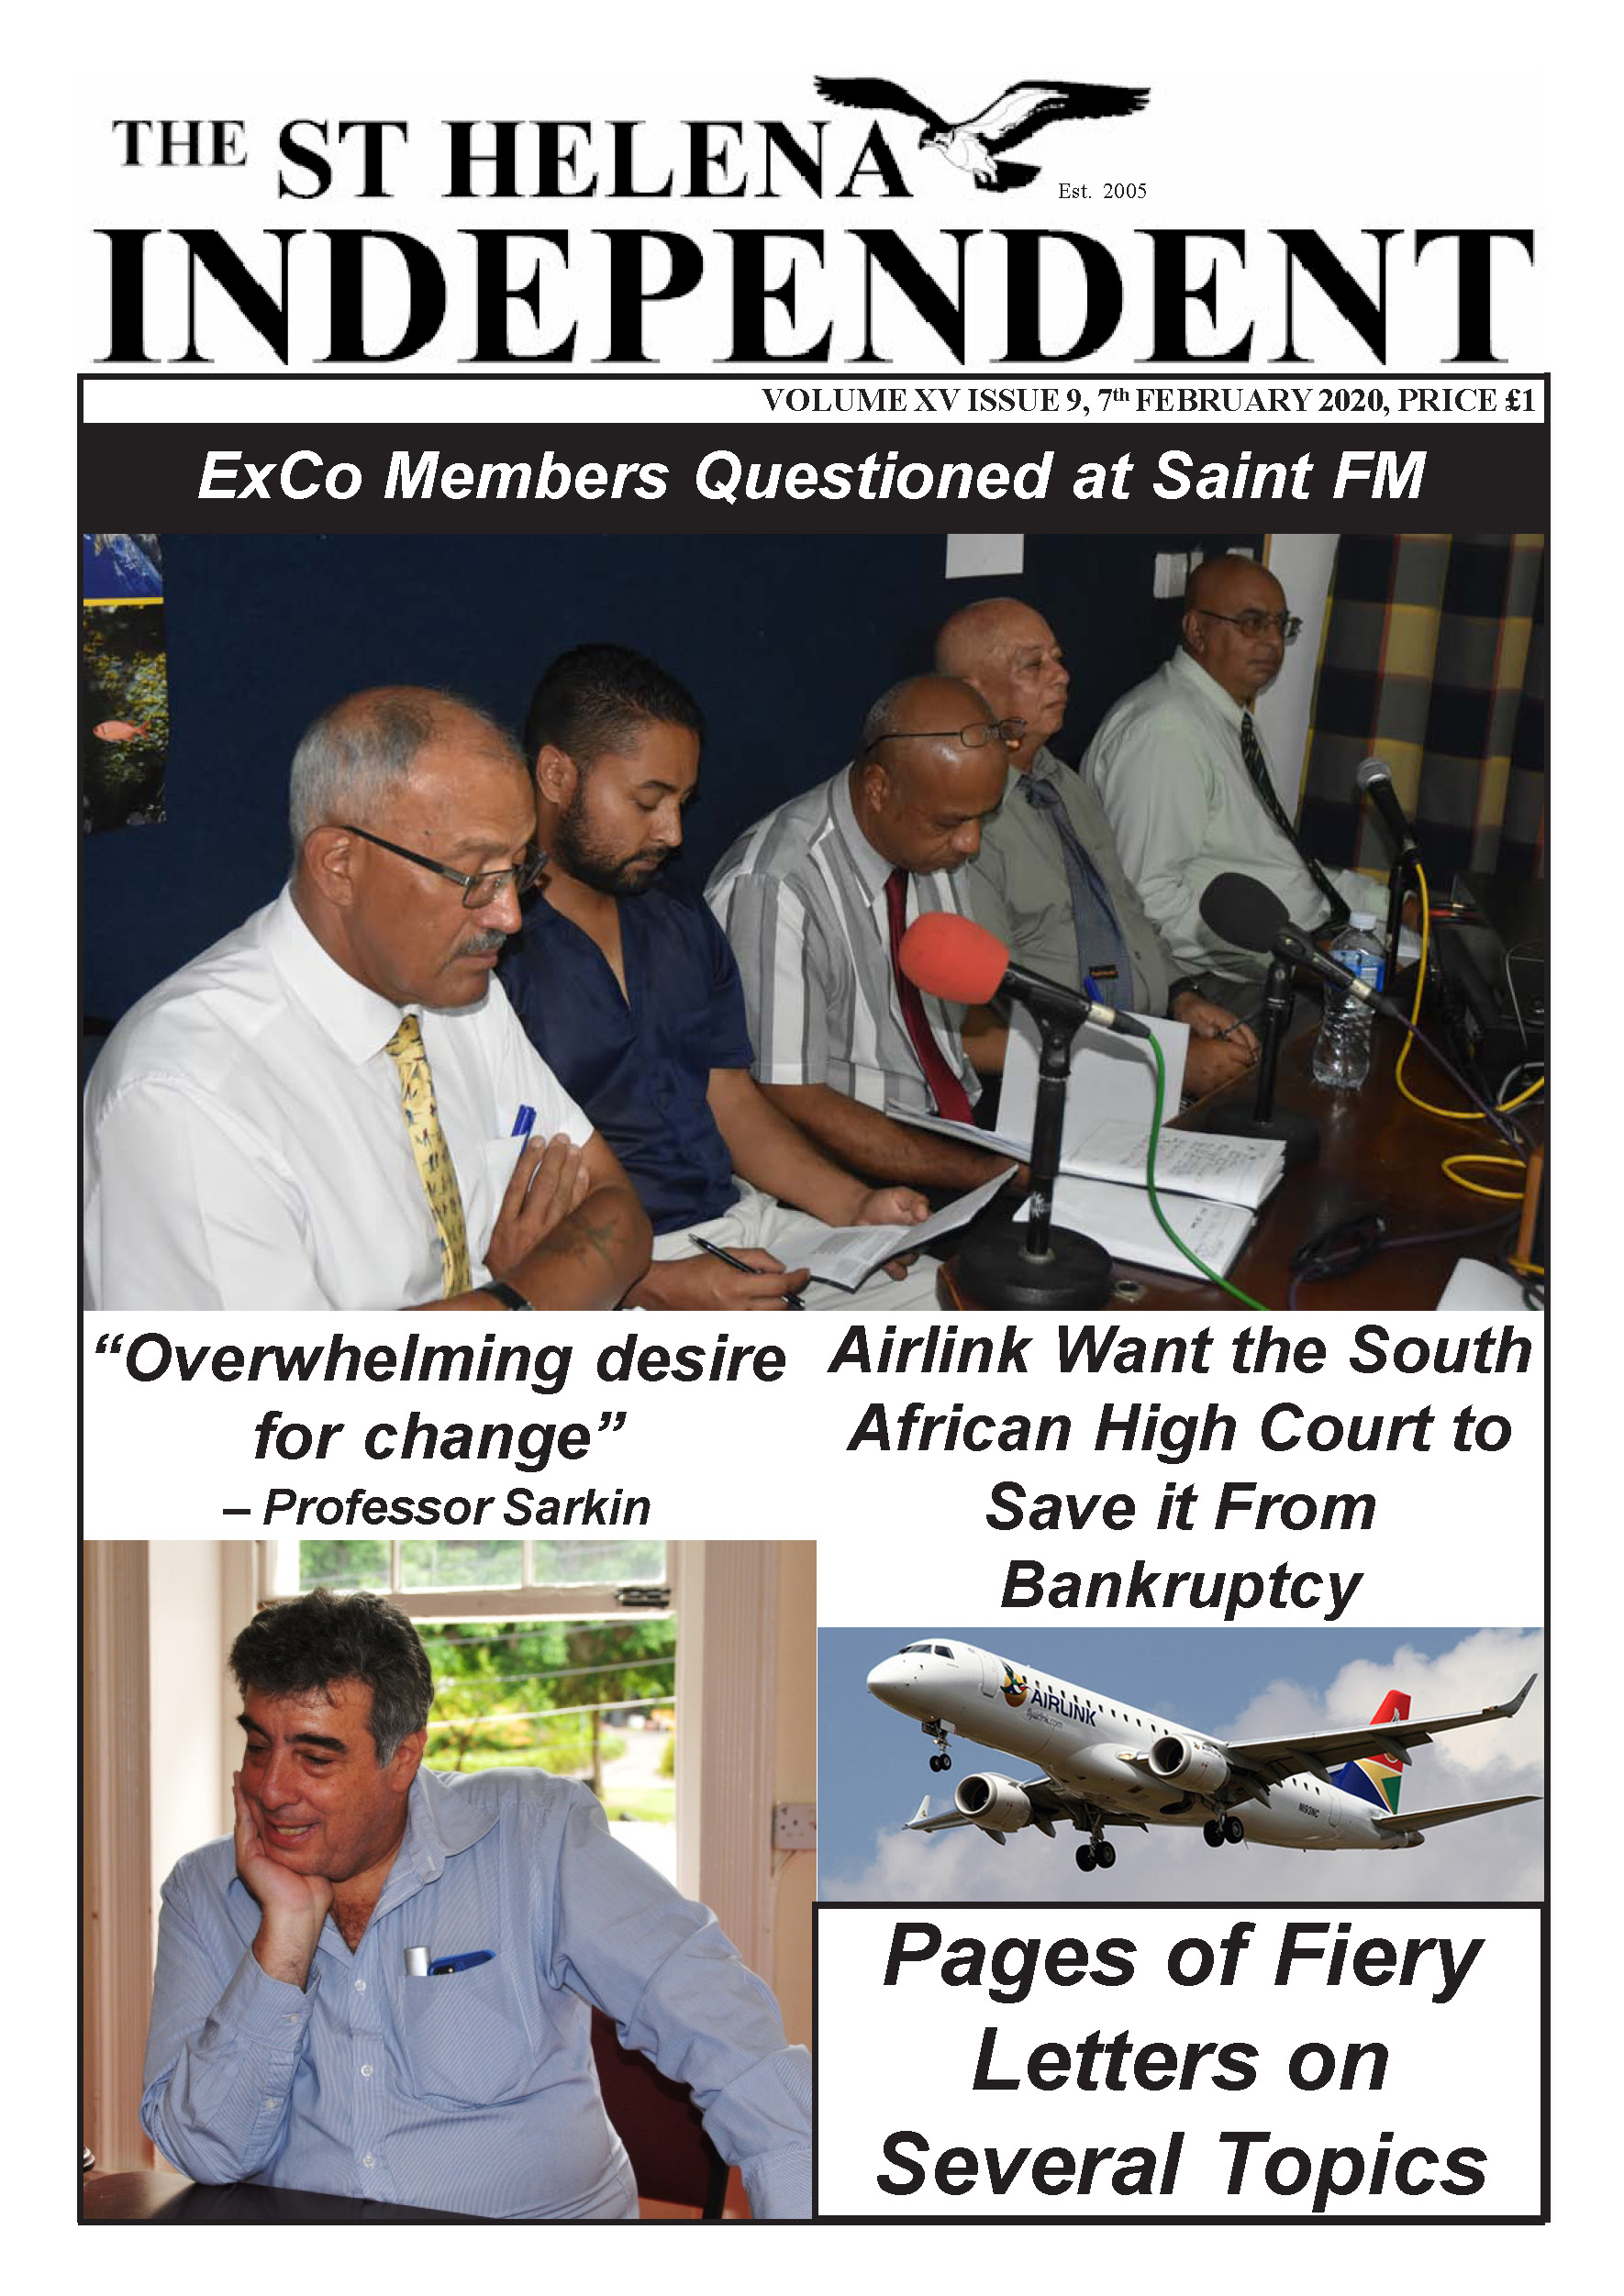 St Helena Independent 20200207 p1